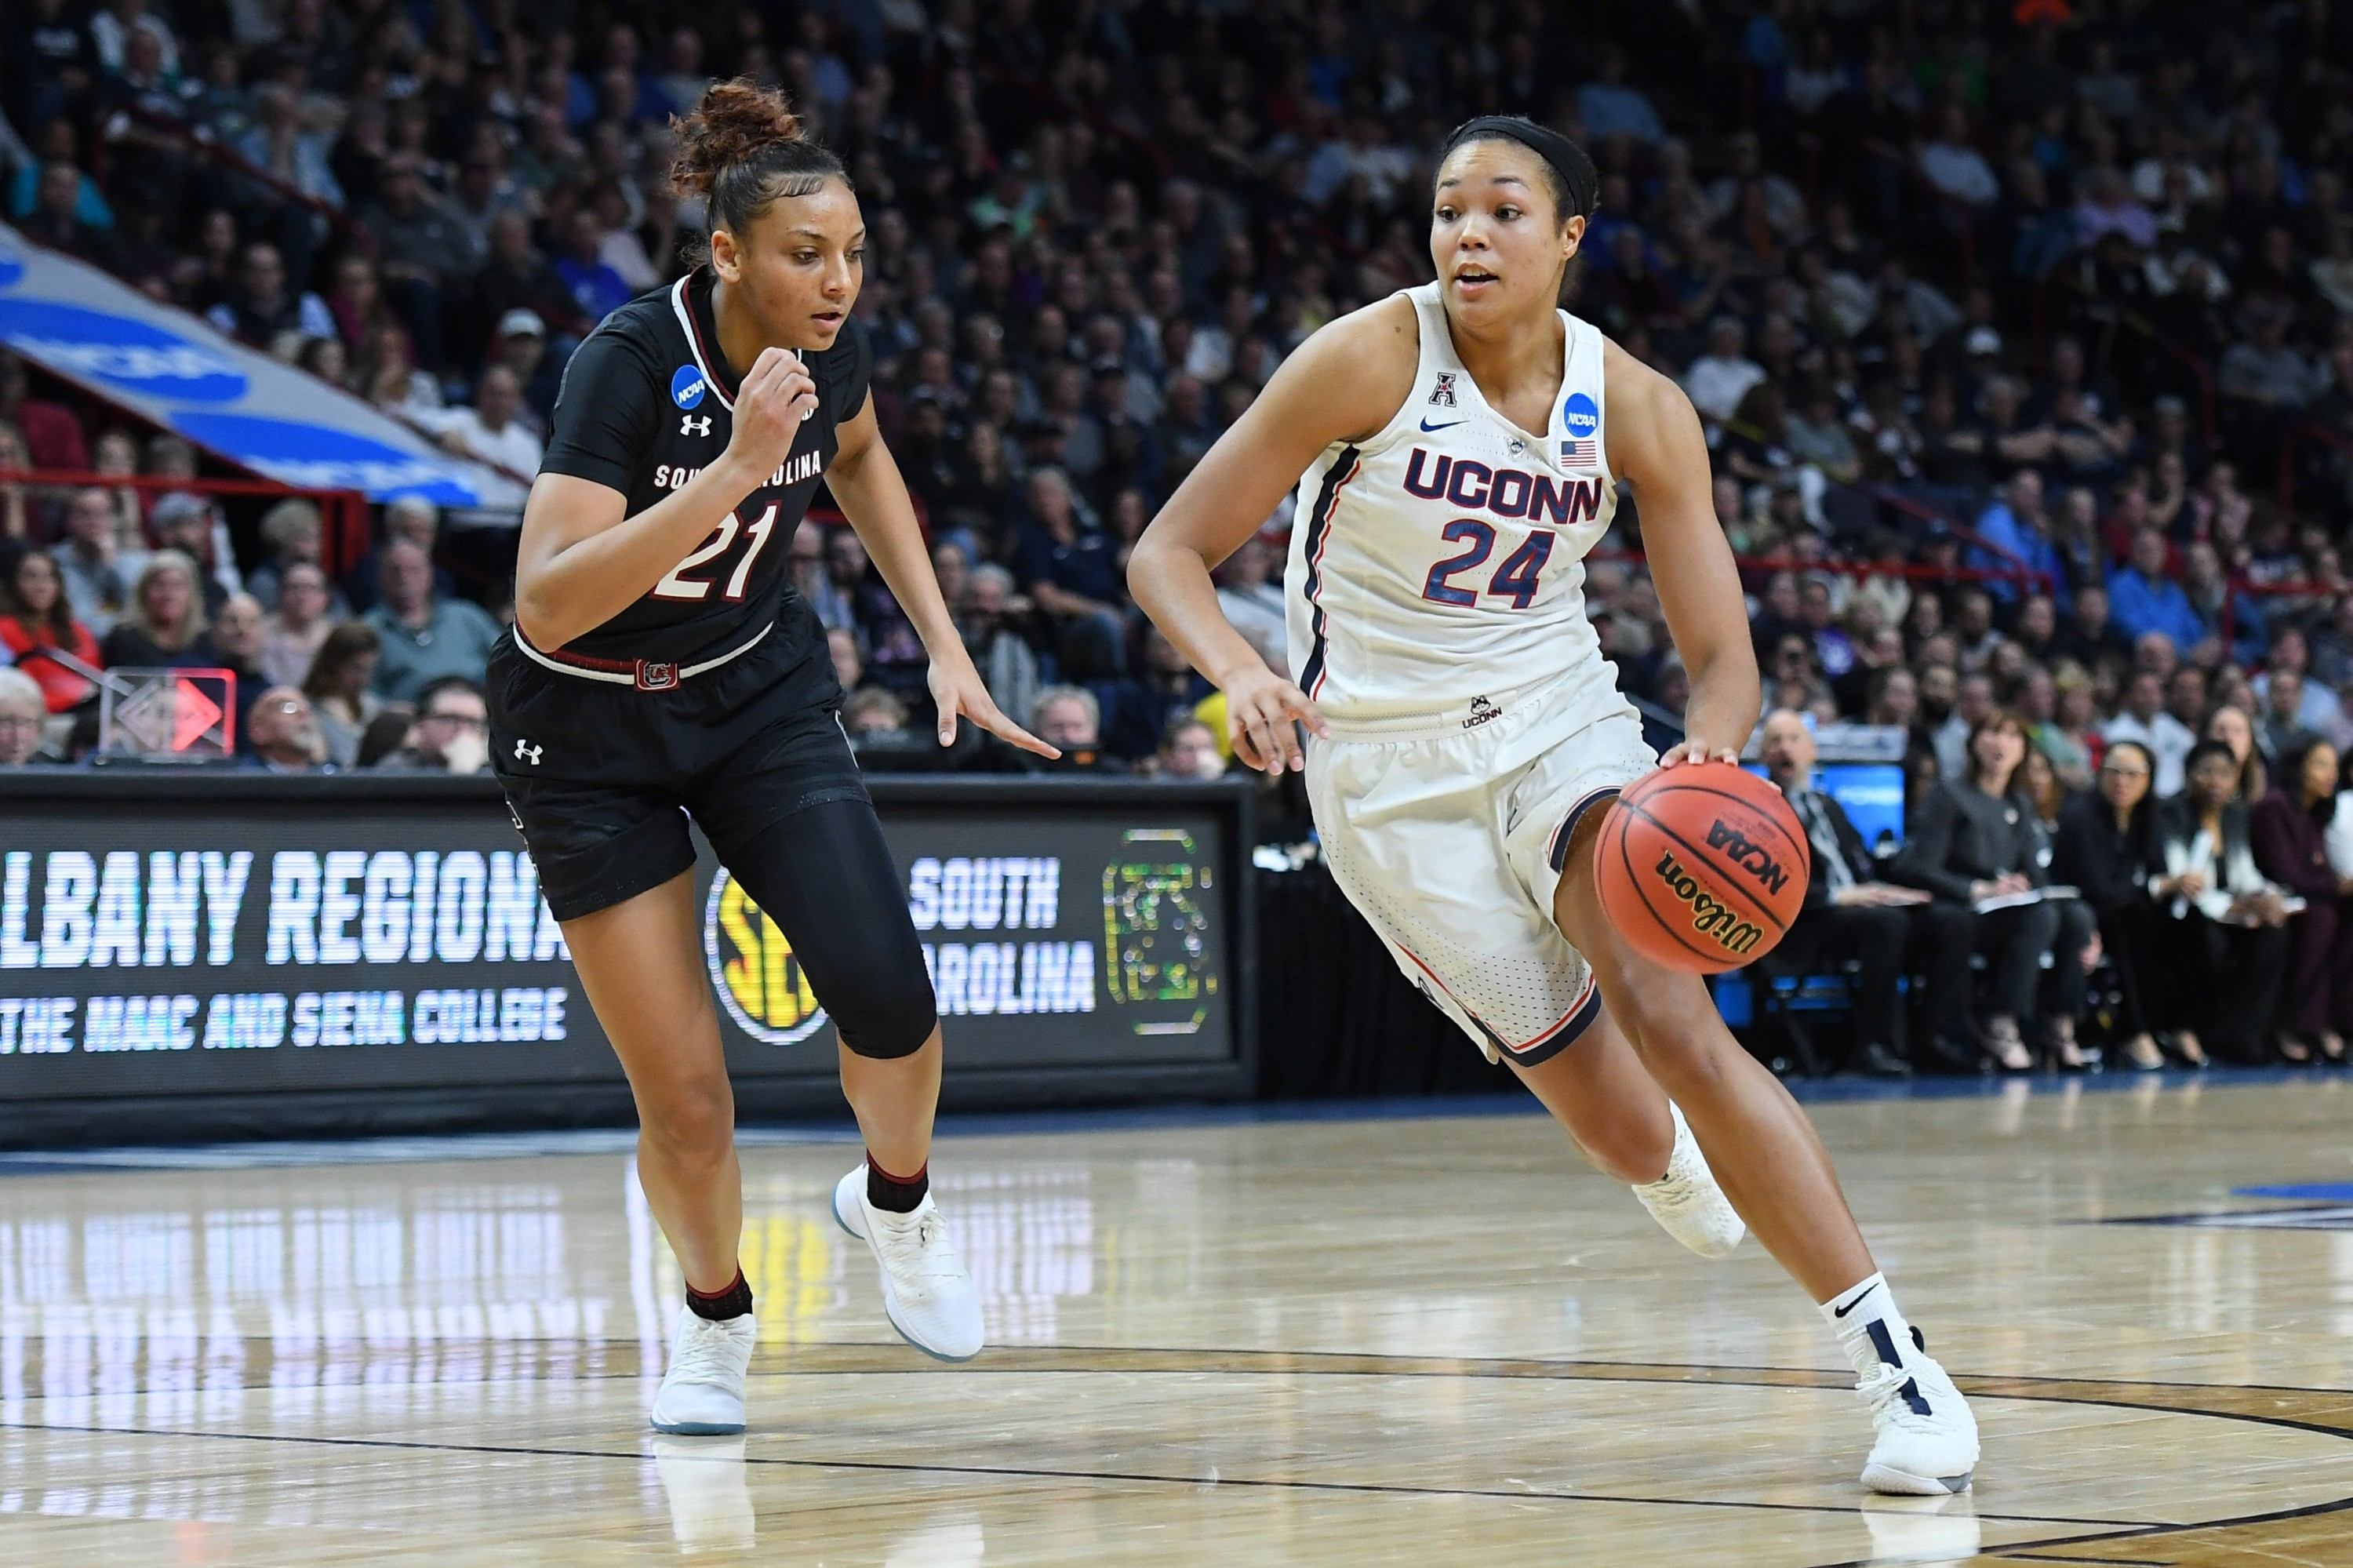 Huskies Announce 2018-19 Non-Conference Schedule - University Of regarding Uconn Womens Basketball Schedule 47544